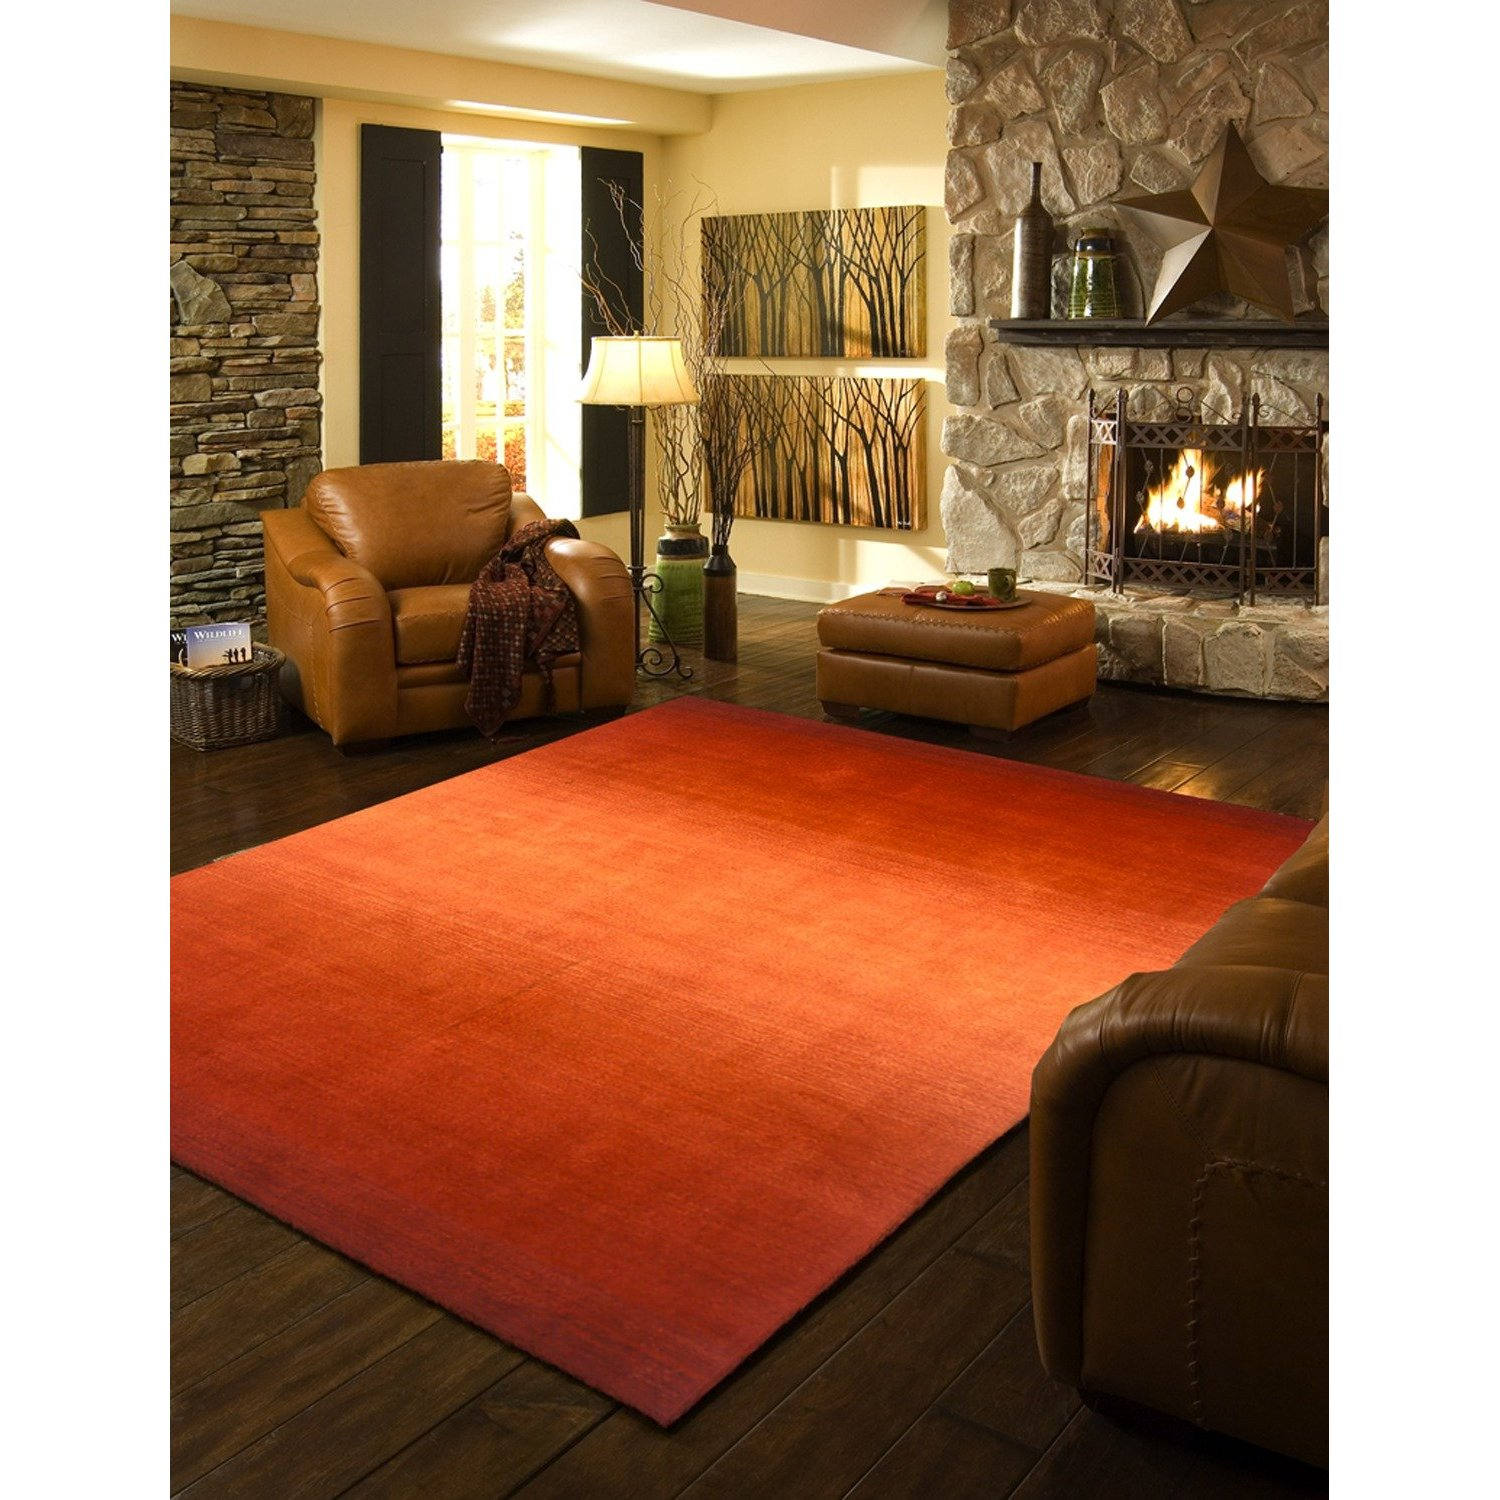 Midcentury Modern Rug: Mad For Mid-Century: Orange Rug For A Mid-Century Ranch